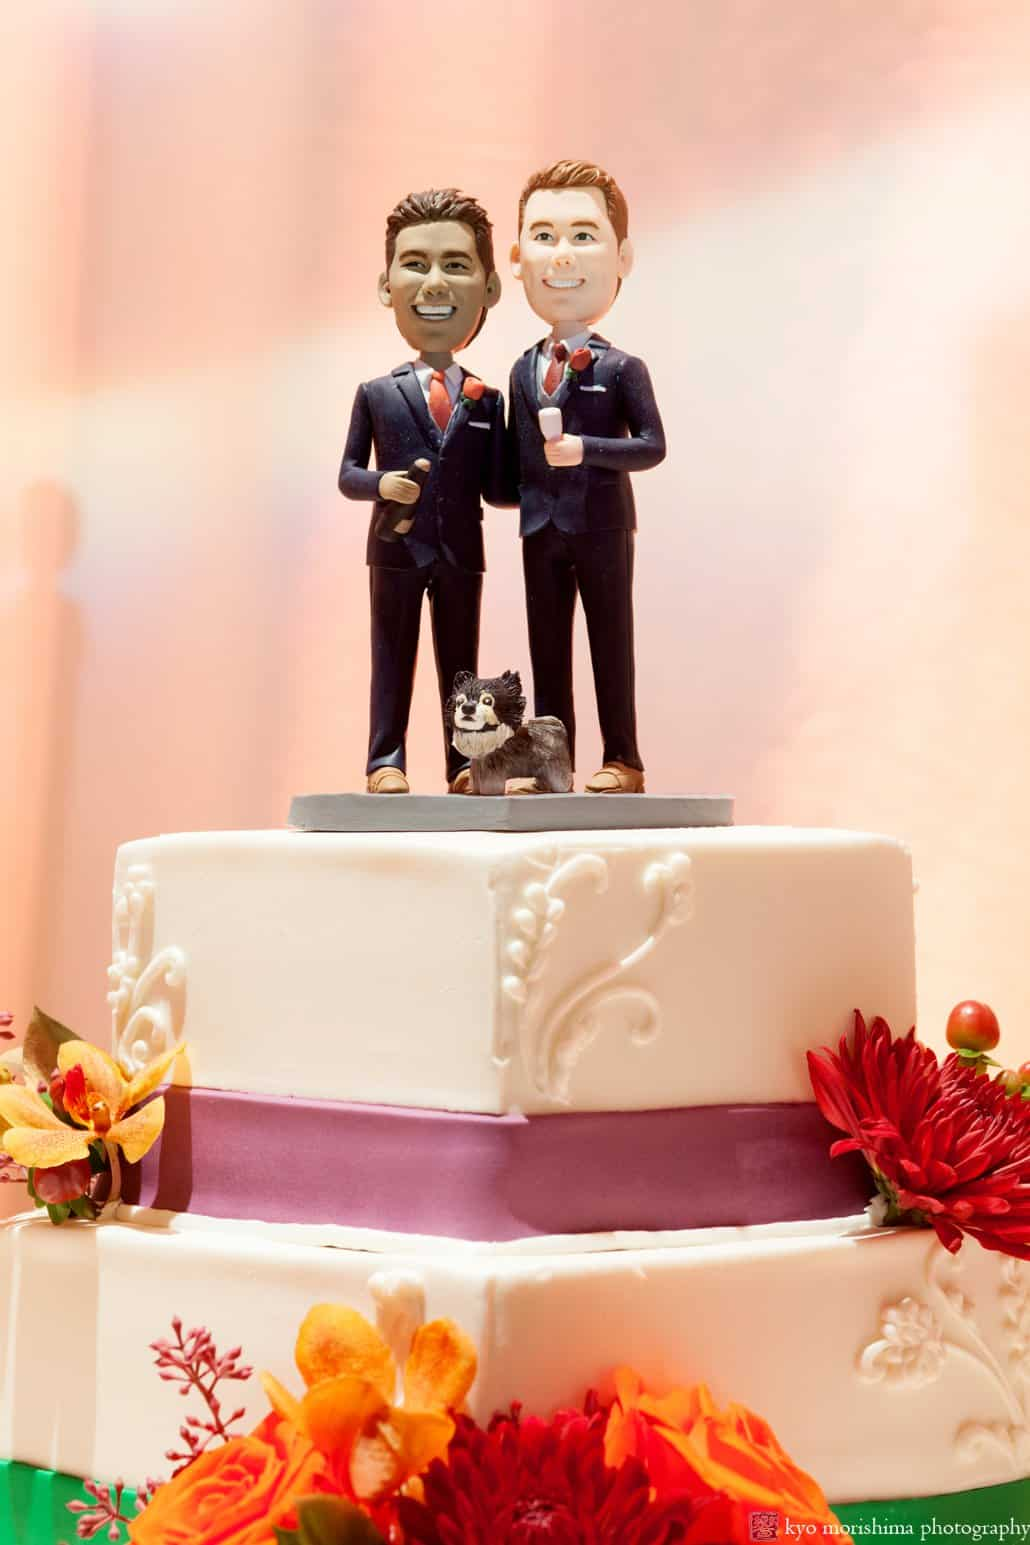 Bobblehead wedding cake toppers with cake by Cramer Bakery